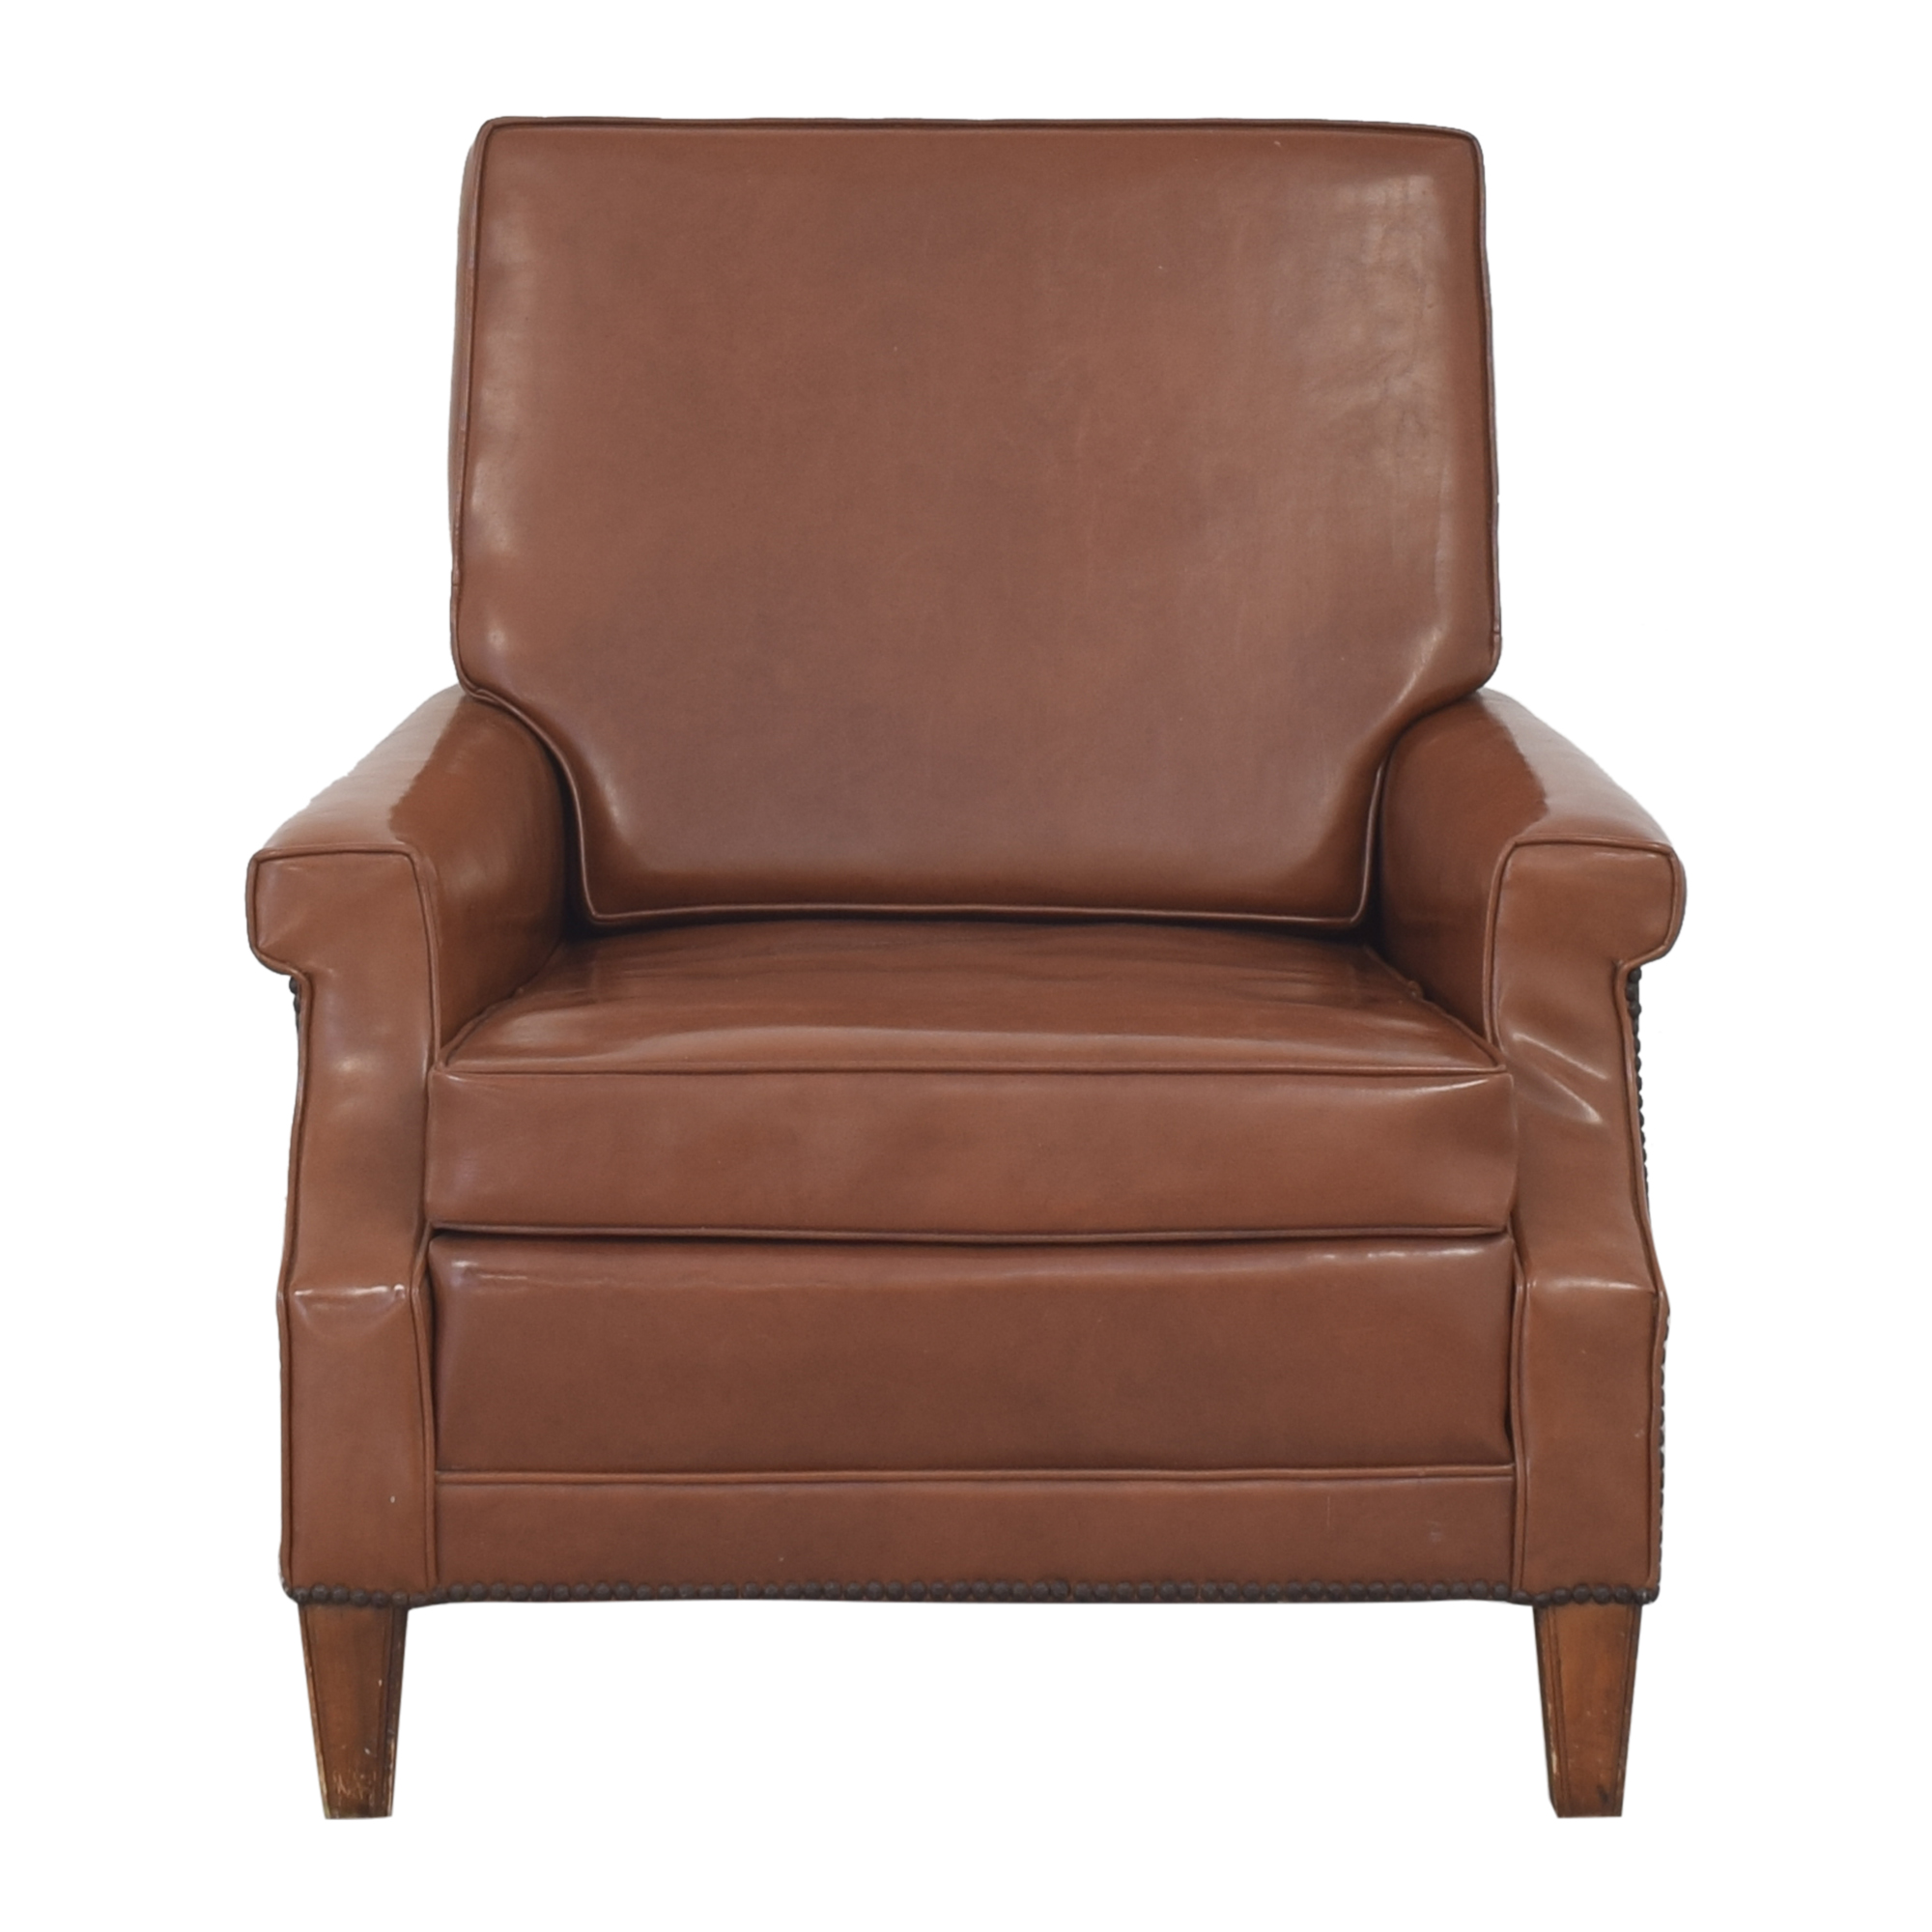 Nailhead Trim Armchair brown